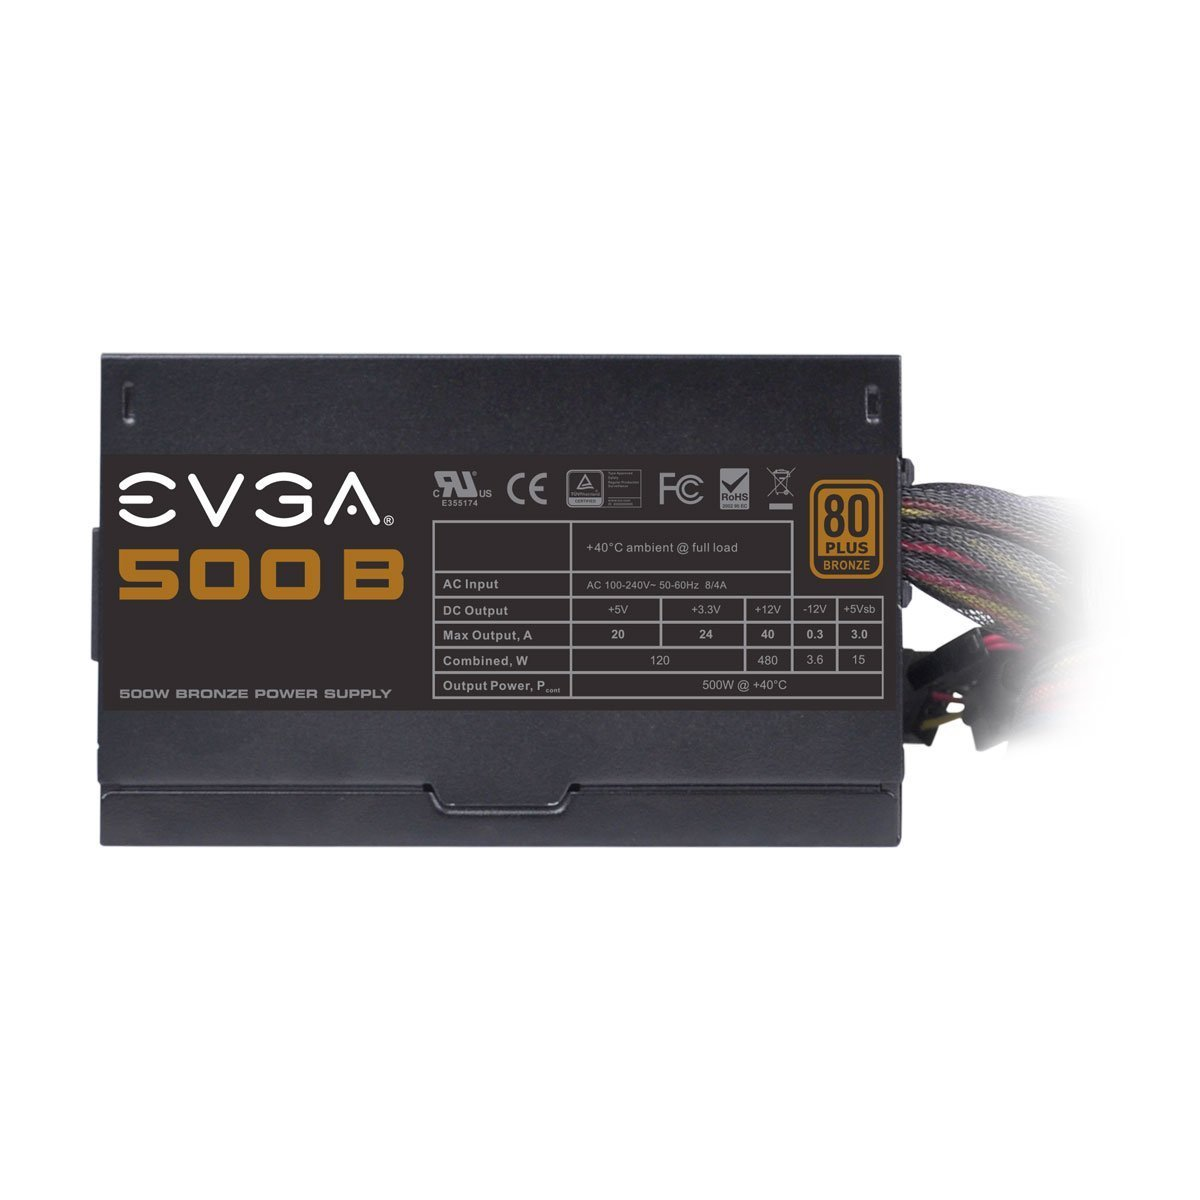 61RhJKONZzL._SL1200_ amazon com evga 500 b1, 80 bronze 500w power supply, 3 year  at creativeand.co